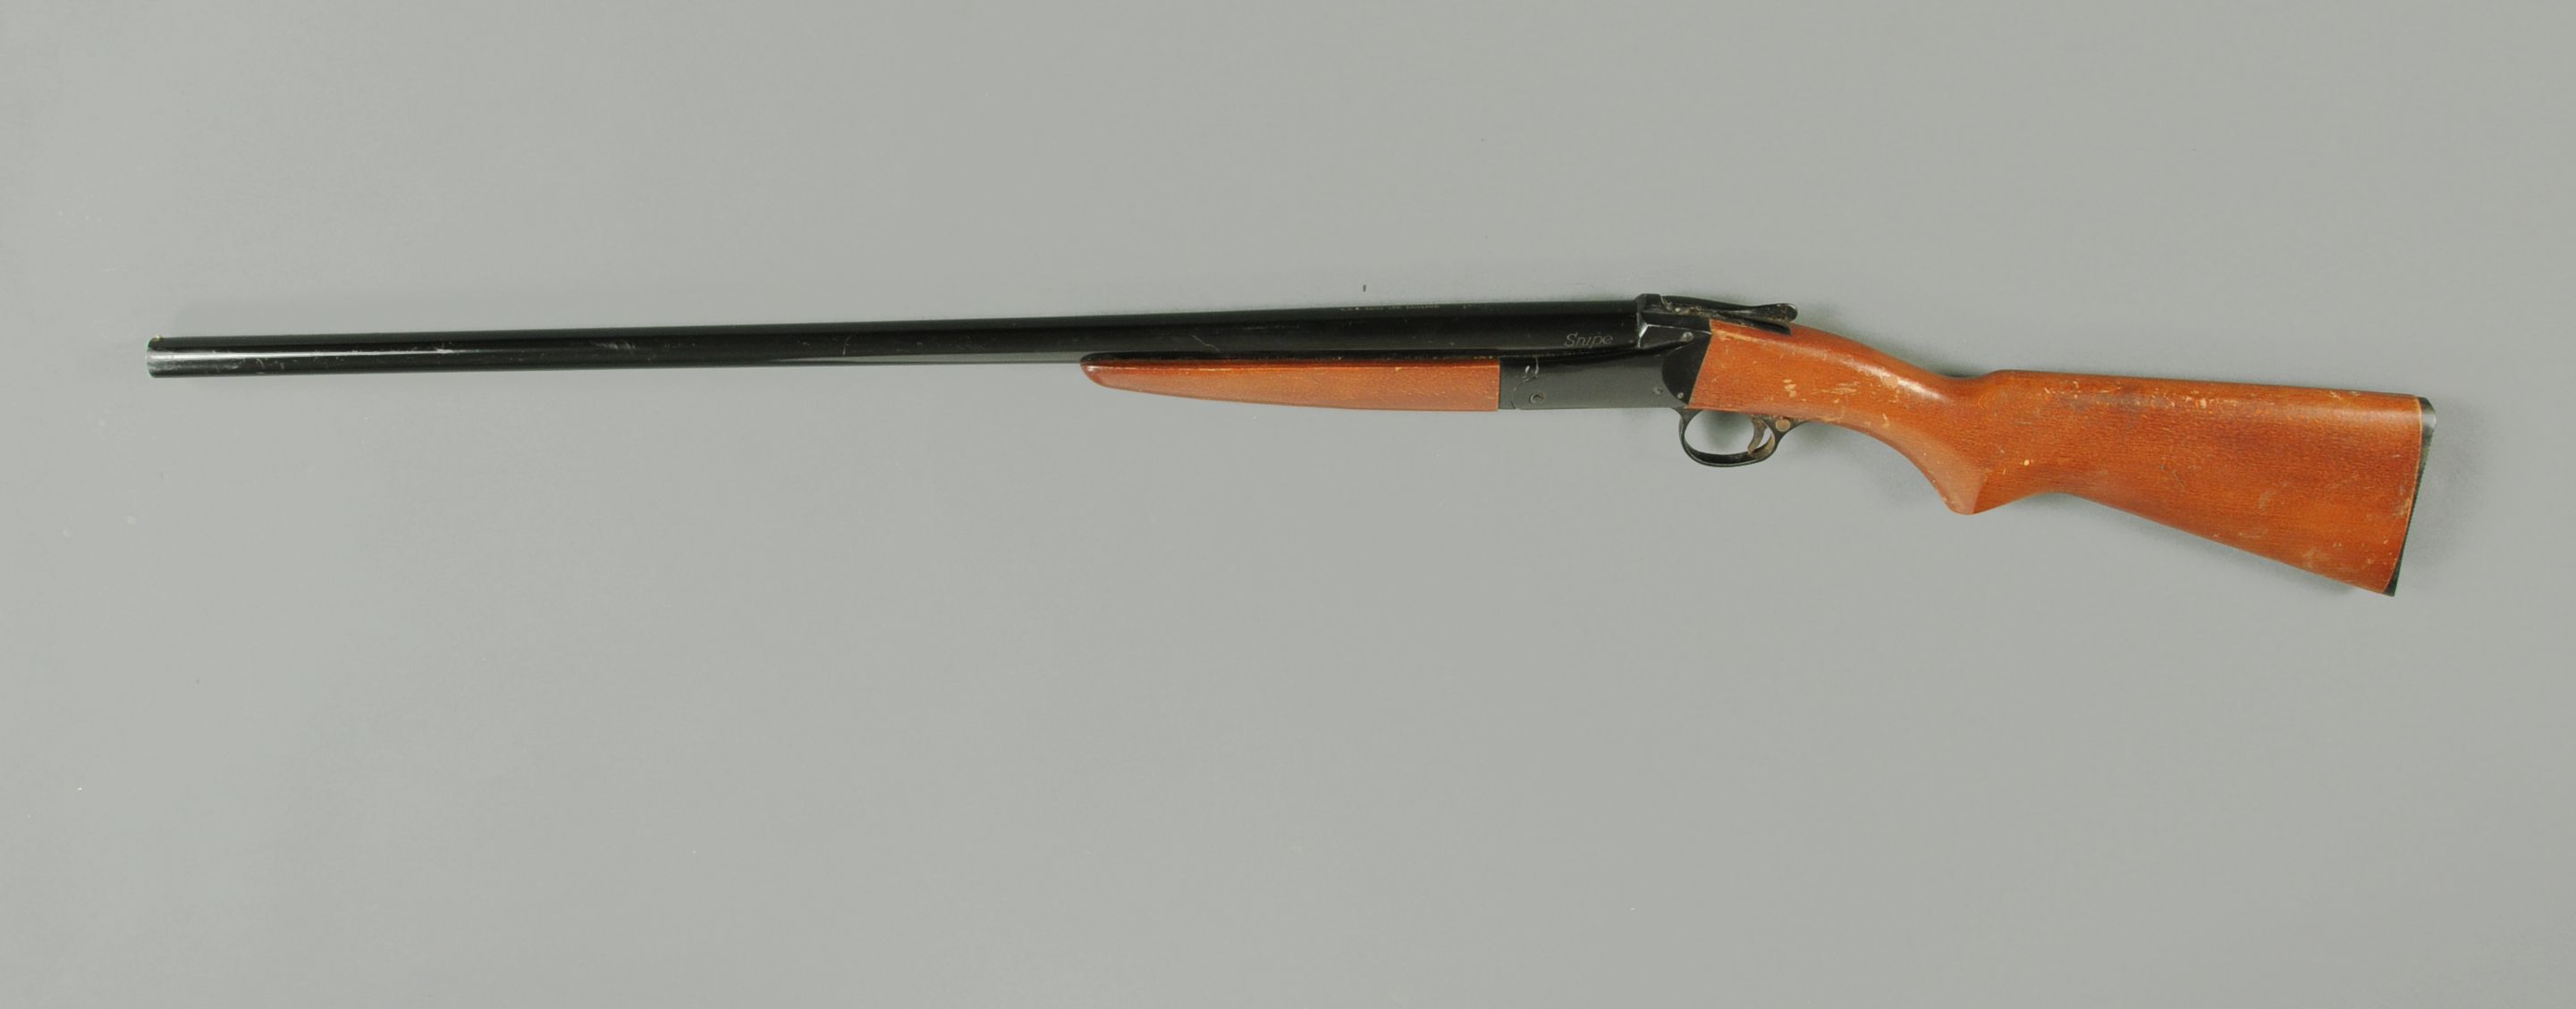 dating shotgun Red label date this is a discussion on red label date within the ruger shotguns forums, part of the rifle & shotgun forum category i have a red label with the serial number of 411-02715.